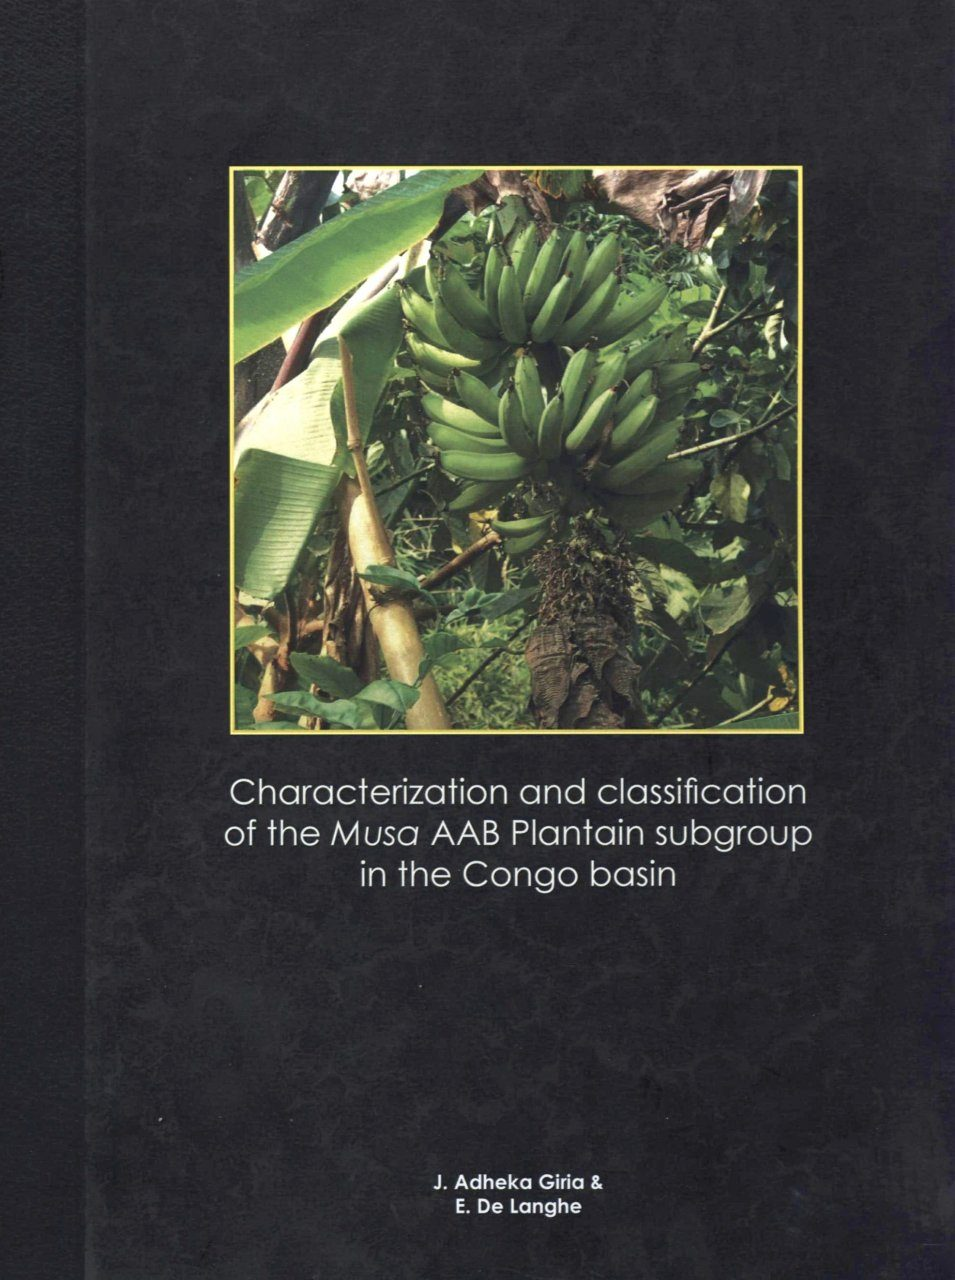 Characterization and Classification of the Musa AAB Plantain Subgroup in the Congo Basin